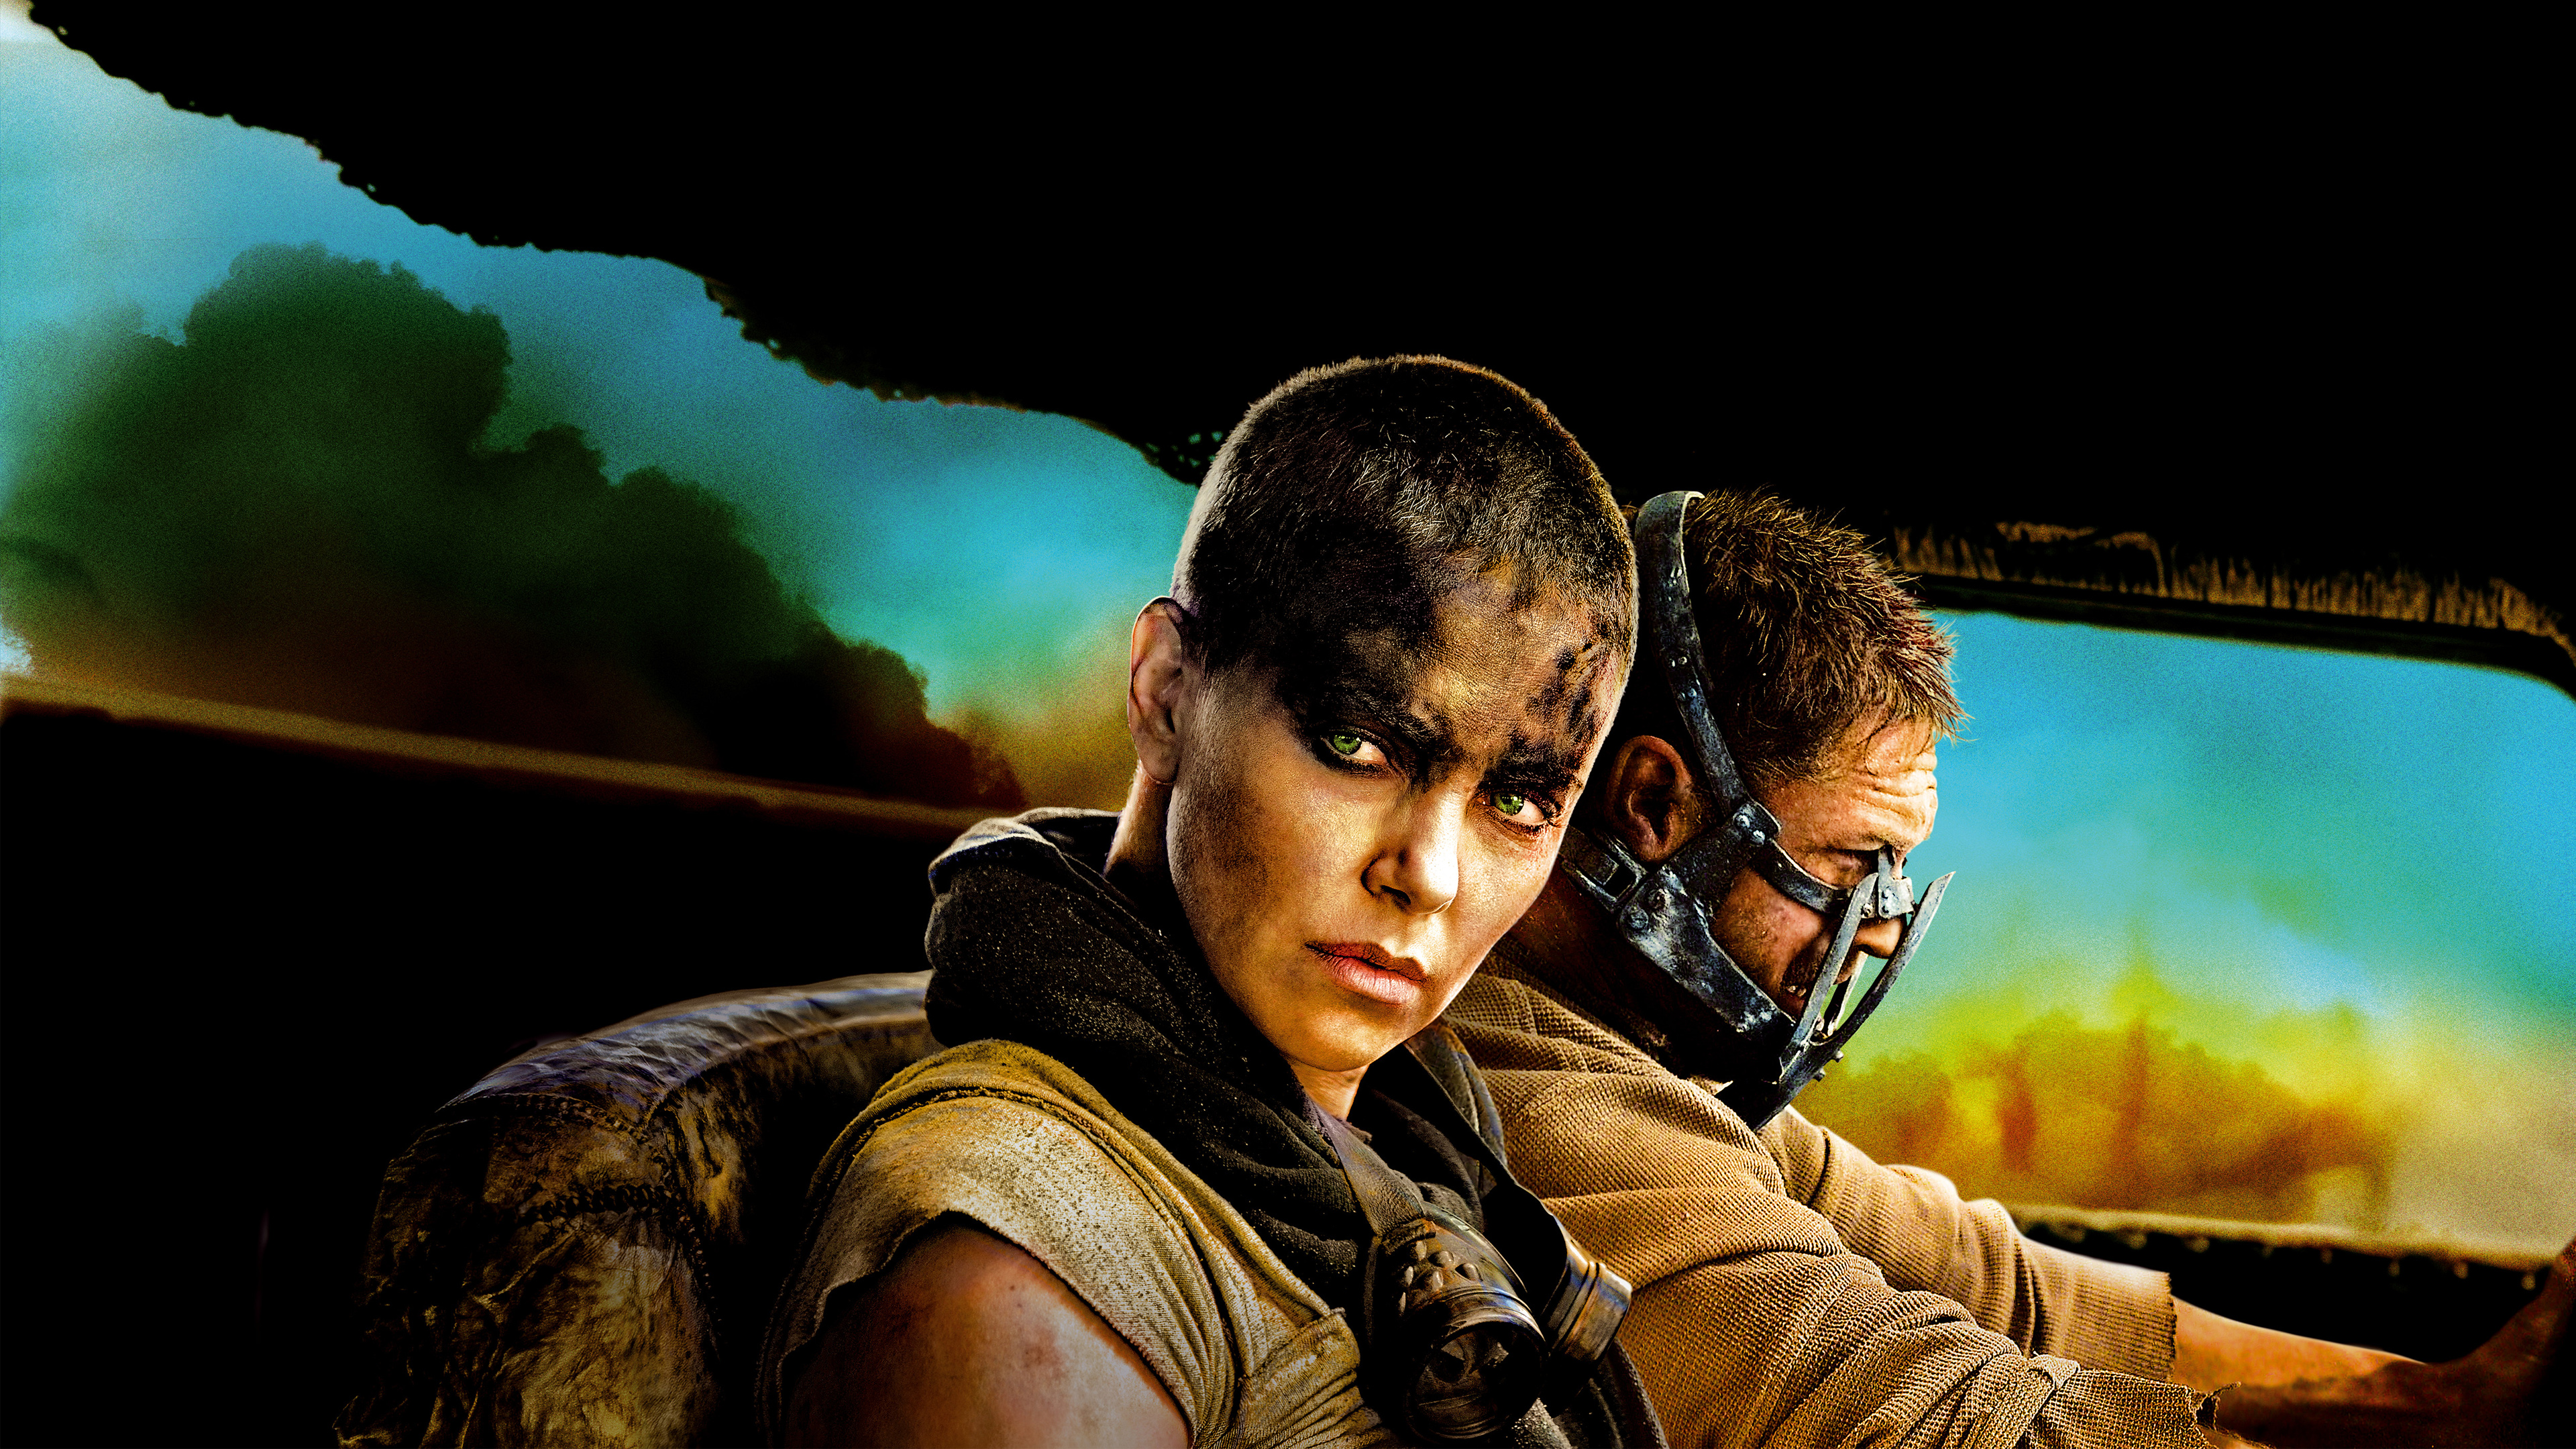 mad max fury road movie widescreen hd wallpaper 54273